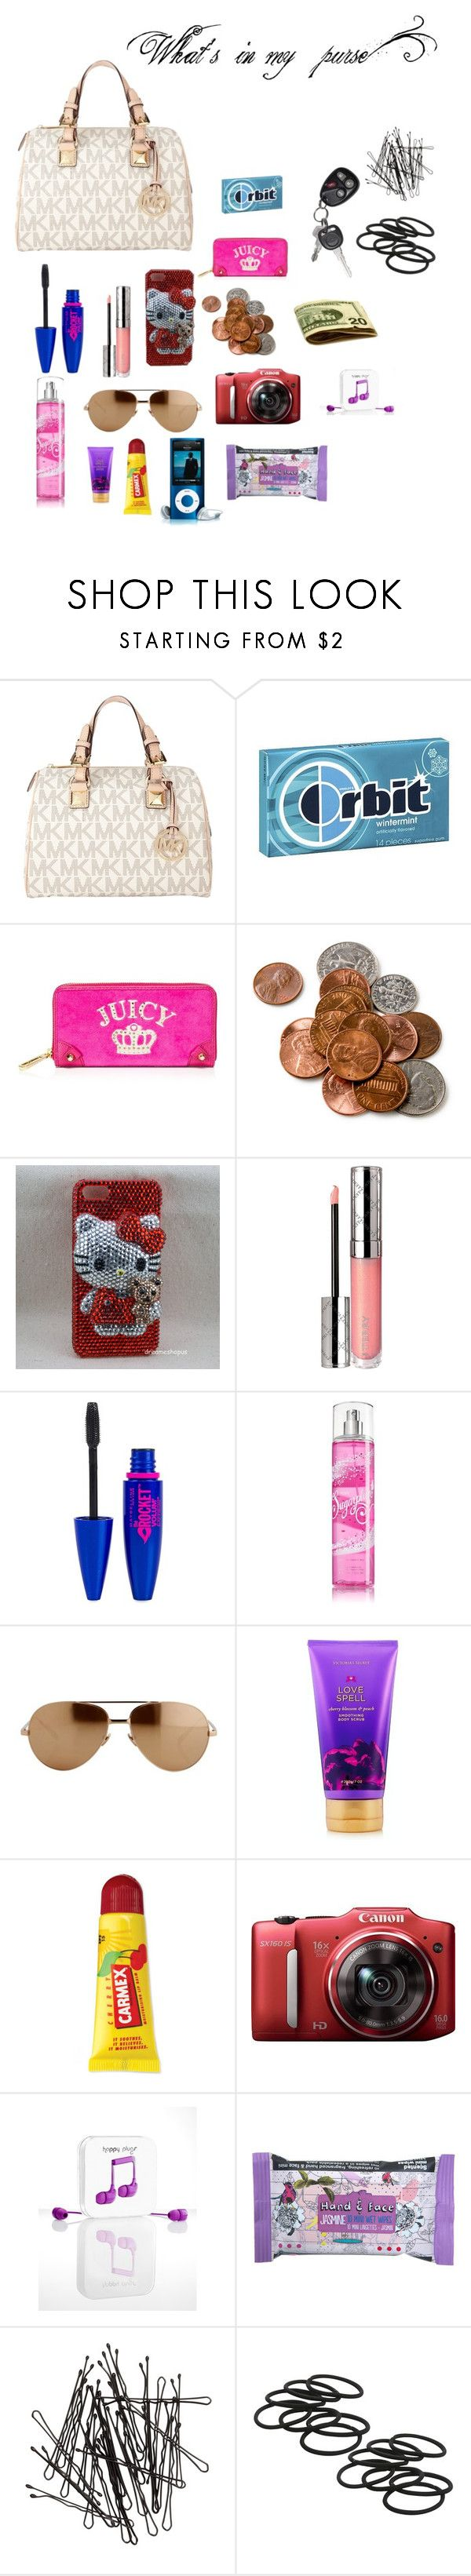 """""""What's in my purse?"""" by allme4life ❤ liked on Polyvore featuring MICHAEL Michael Kors, Wrigley's, Juicy Couture, Hello Kitty, By Terry, Maybelline, Linda Farrow Luxe, Victoria's Secret, Carmex and Happy Plugs"""